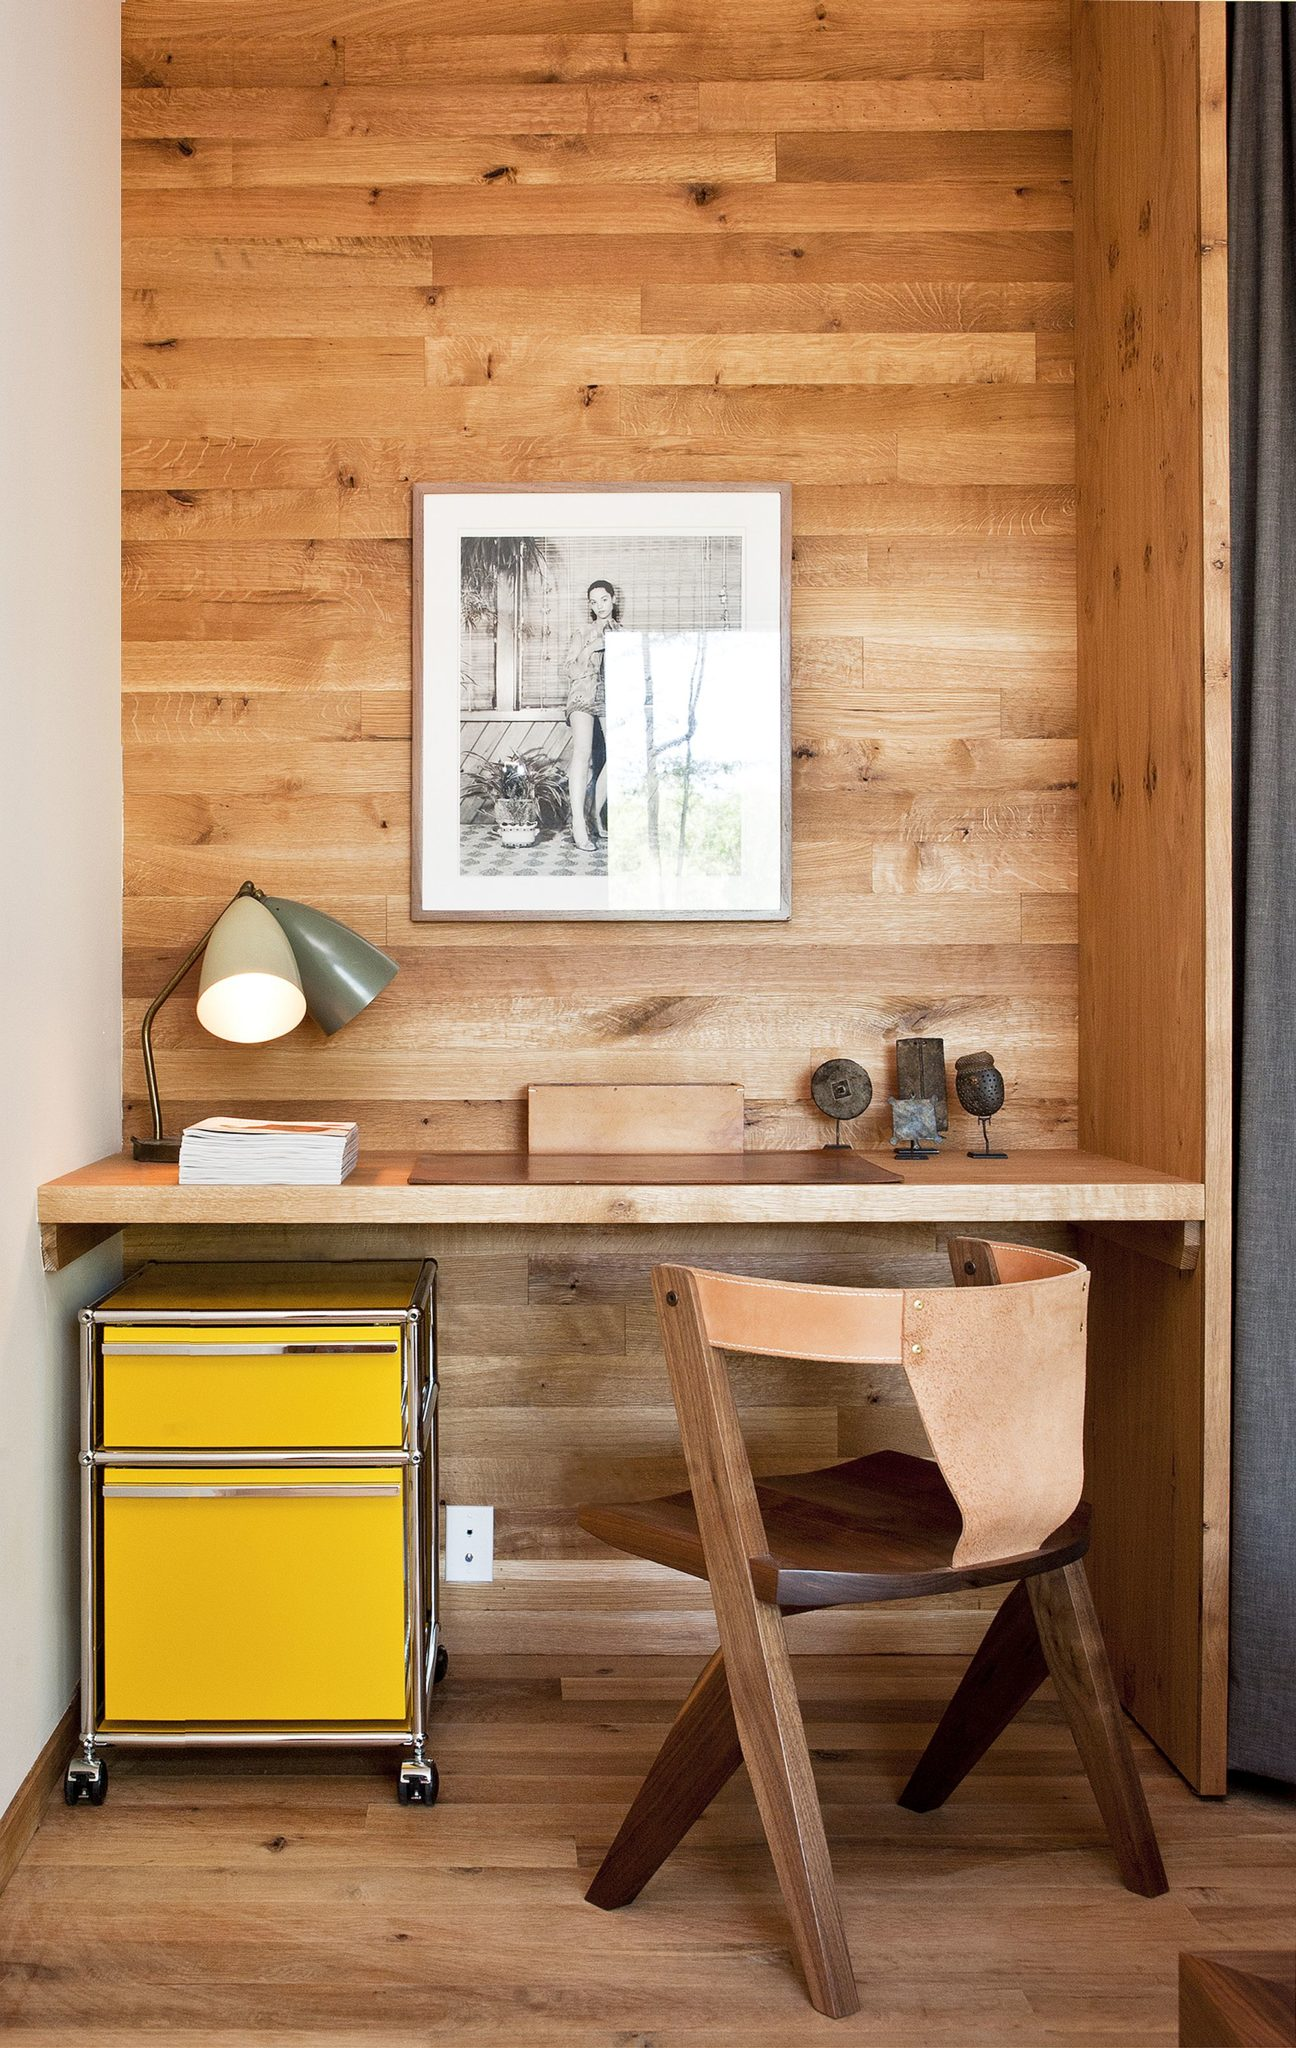 Small-workspace-in-the-corner-or-hallway-demands-little-square-footage